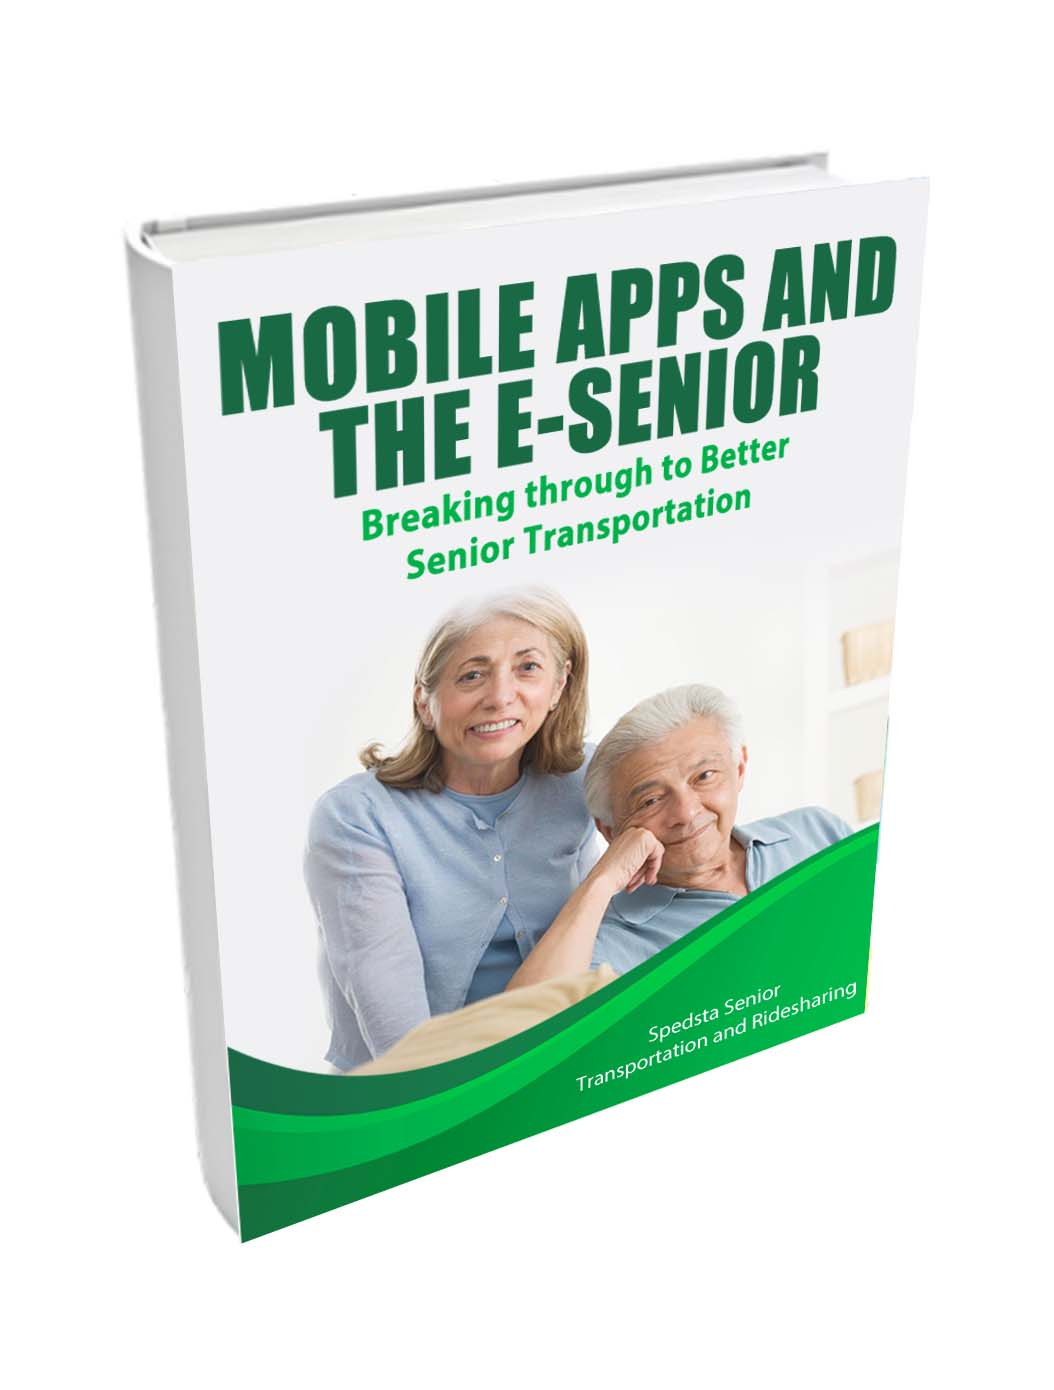 An Introduction to Technology and Senior Transportation